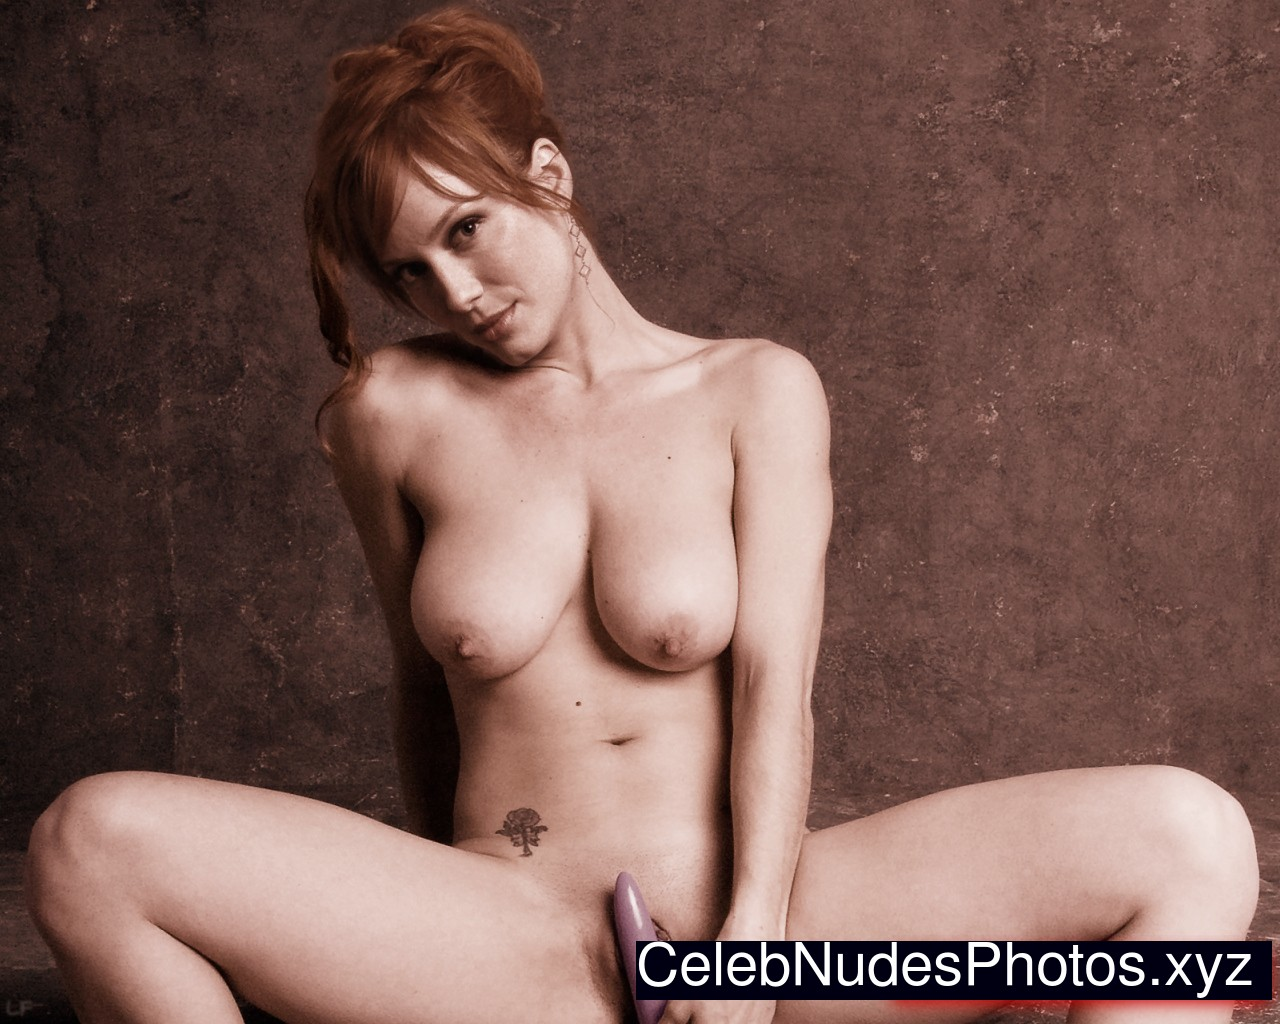 Very grateful Christina hendricks boobs nude leaked think